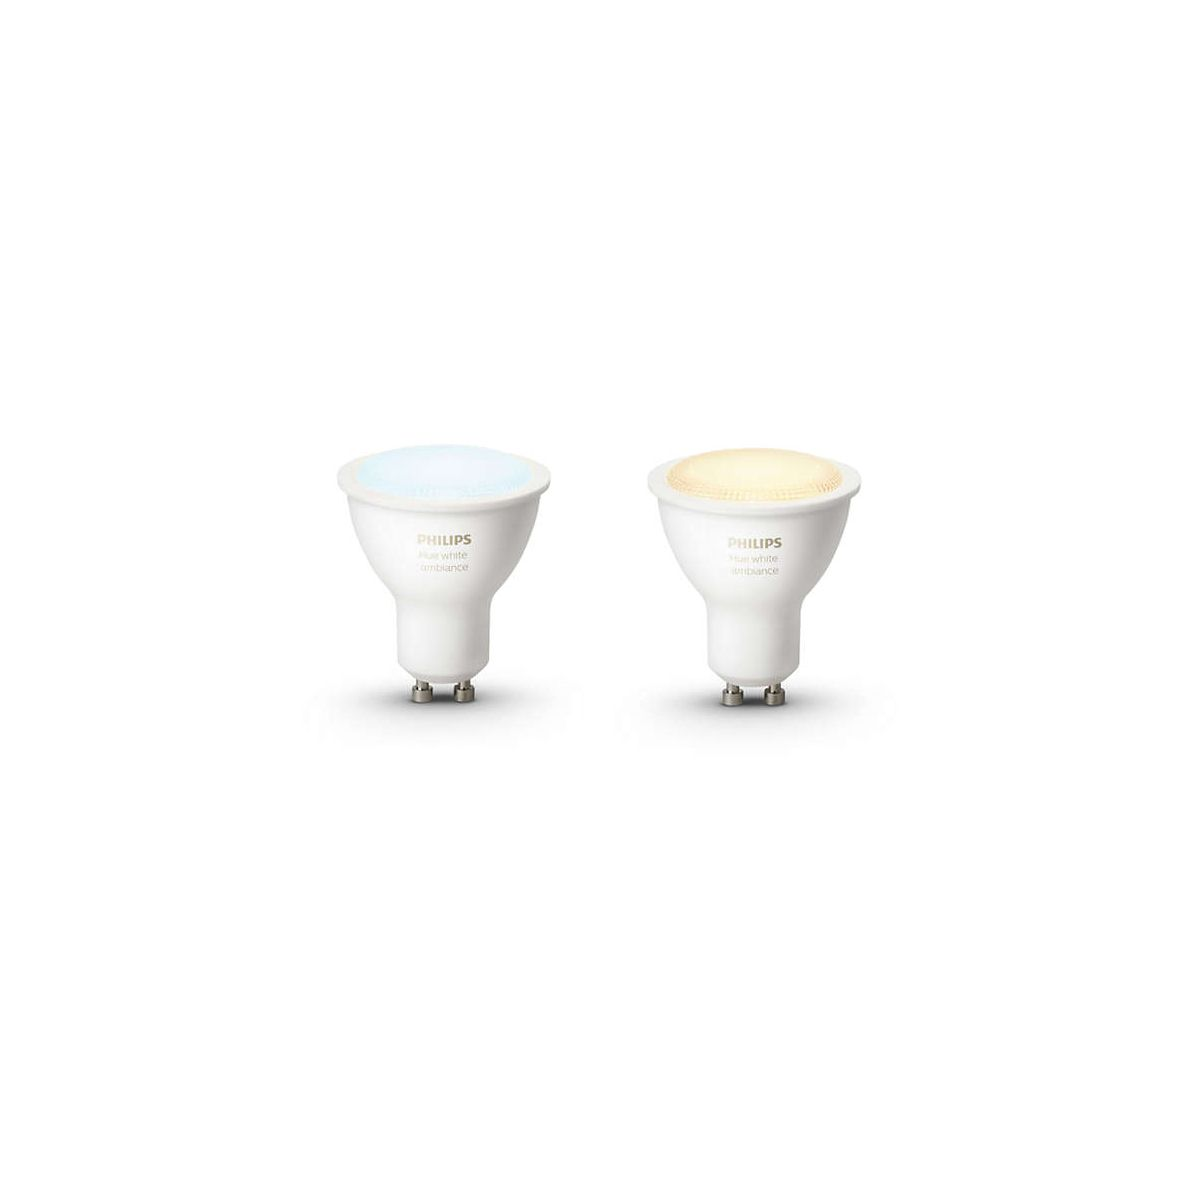 Ampoule connectable PHILIPS Pack x2 GU10 White & Ambiance